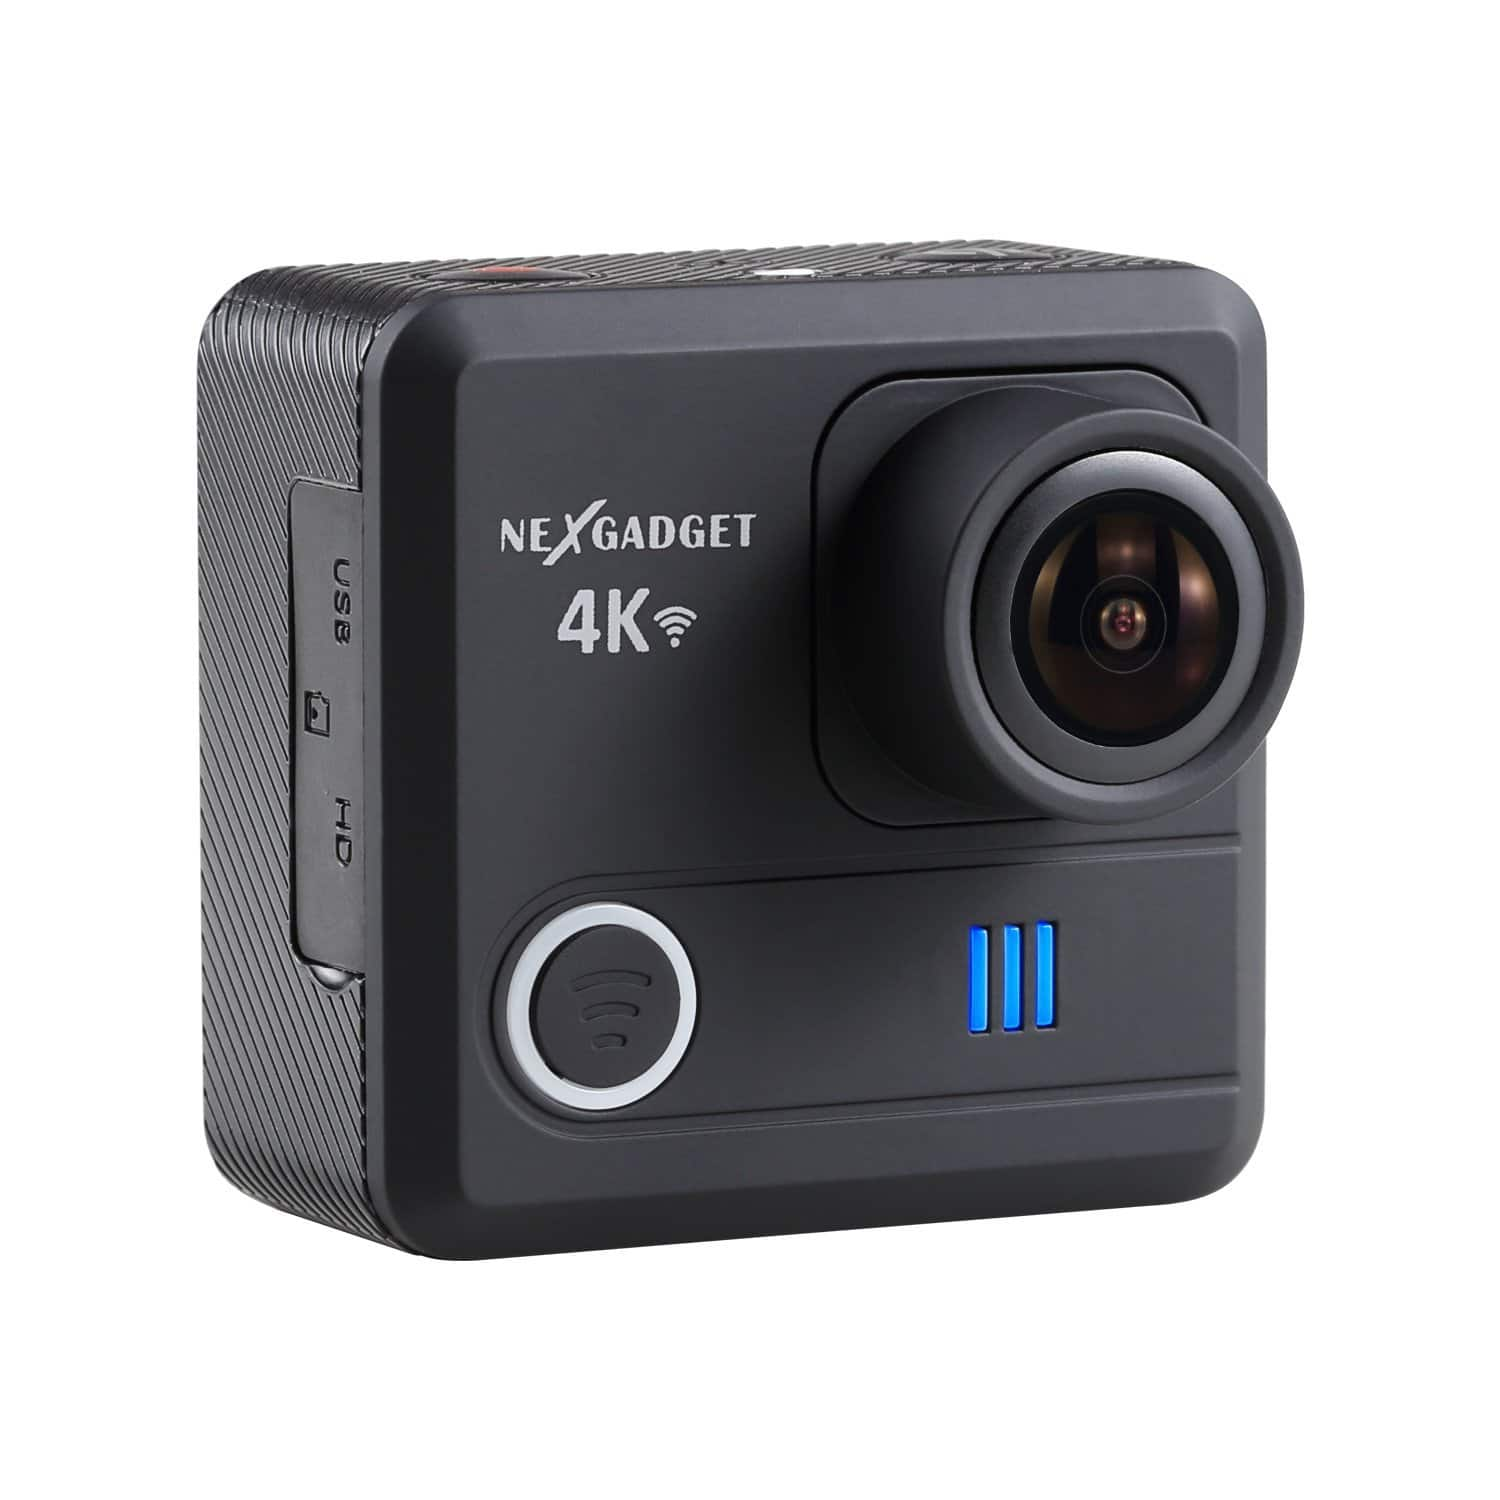 4K WIFI Action Camera 16MP 4K Waterproof Sports Camera 170° Wide-Angle Lens $30 AC FS w/Amazon Prime $30.09